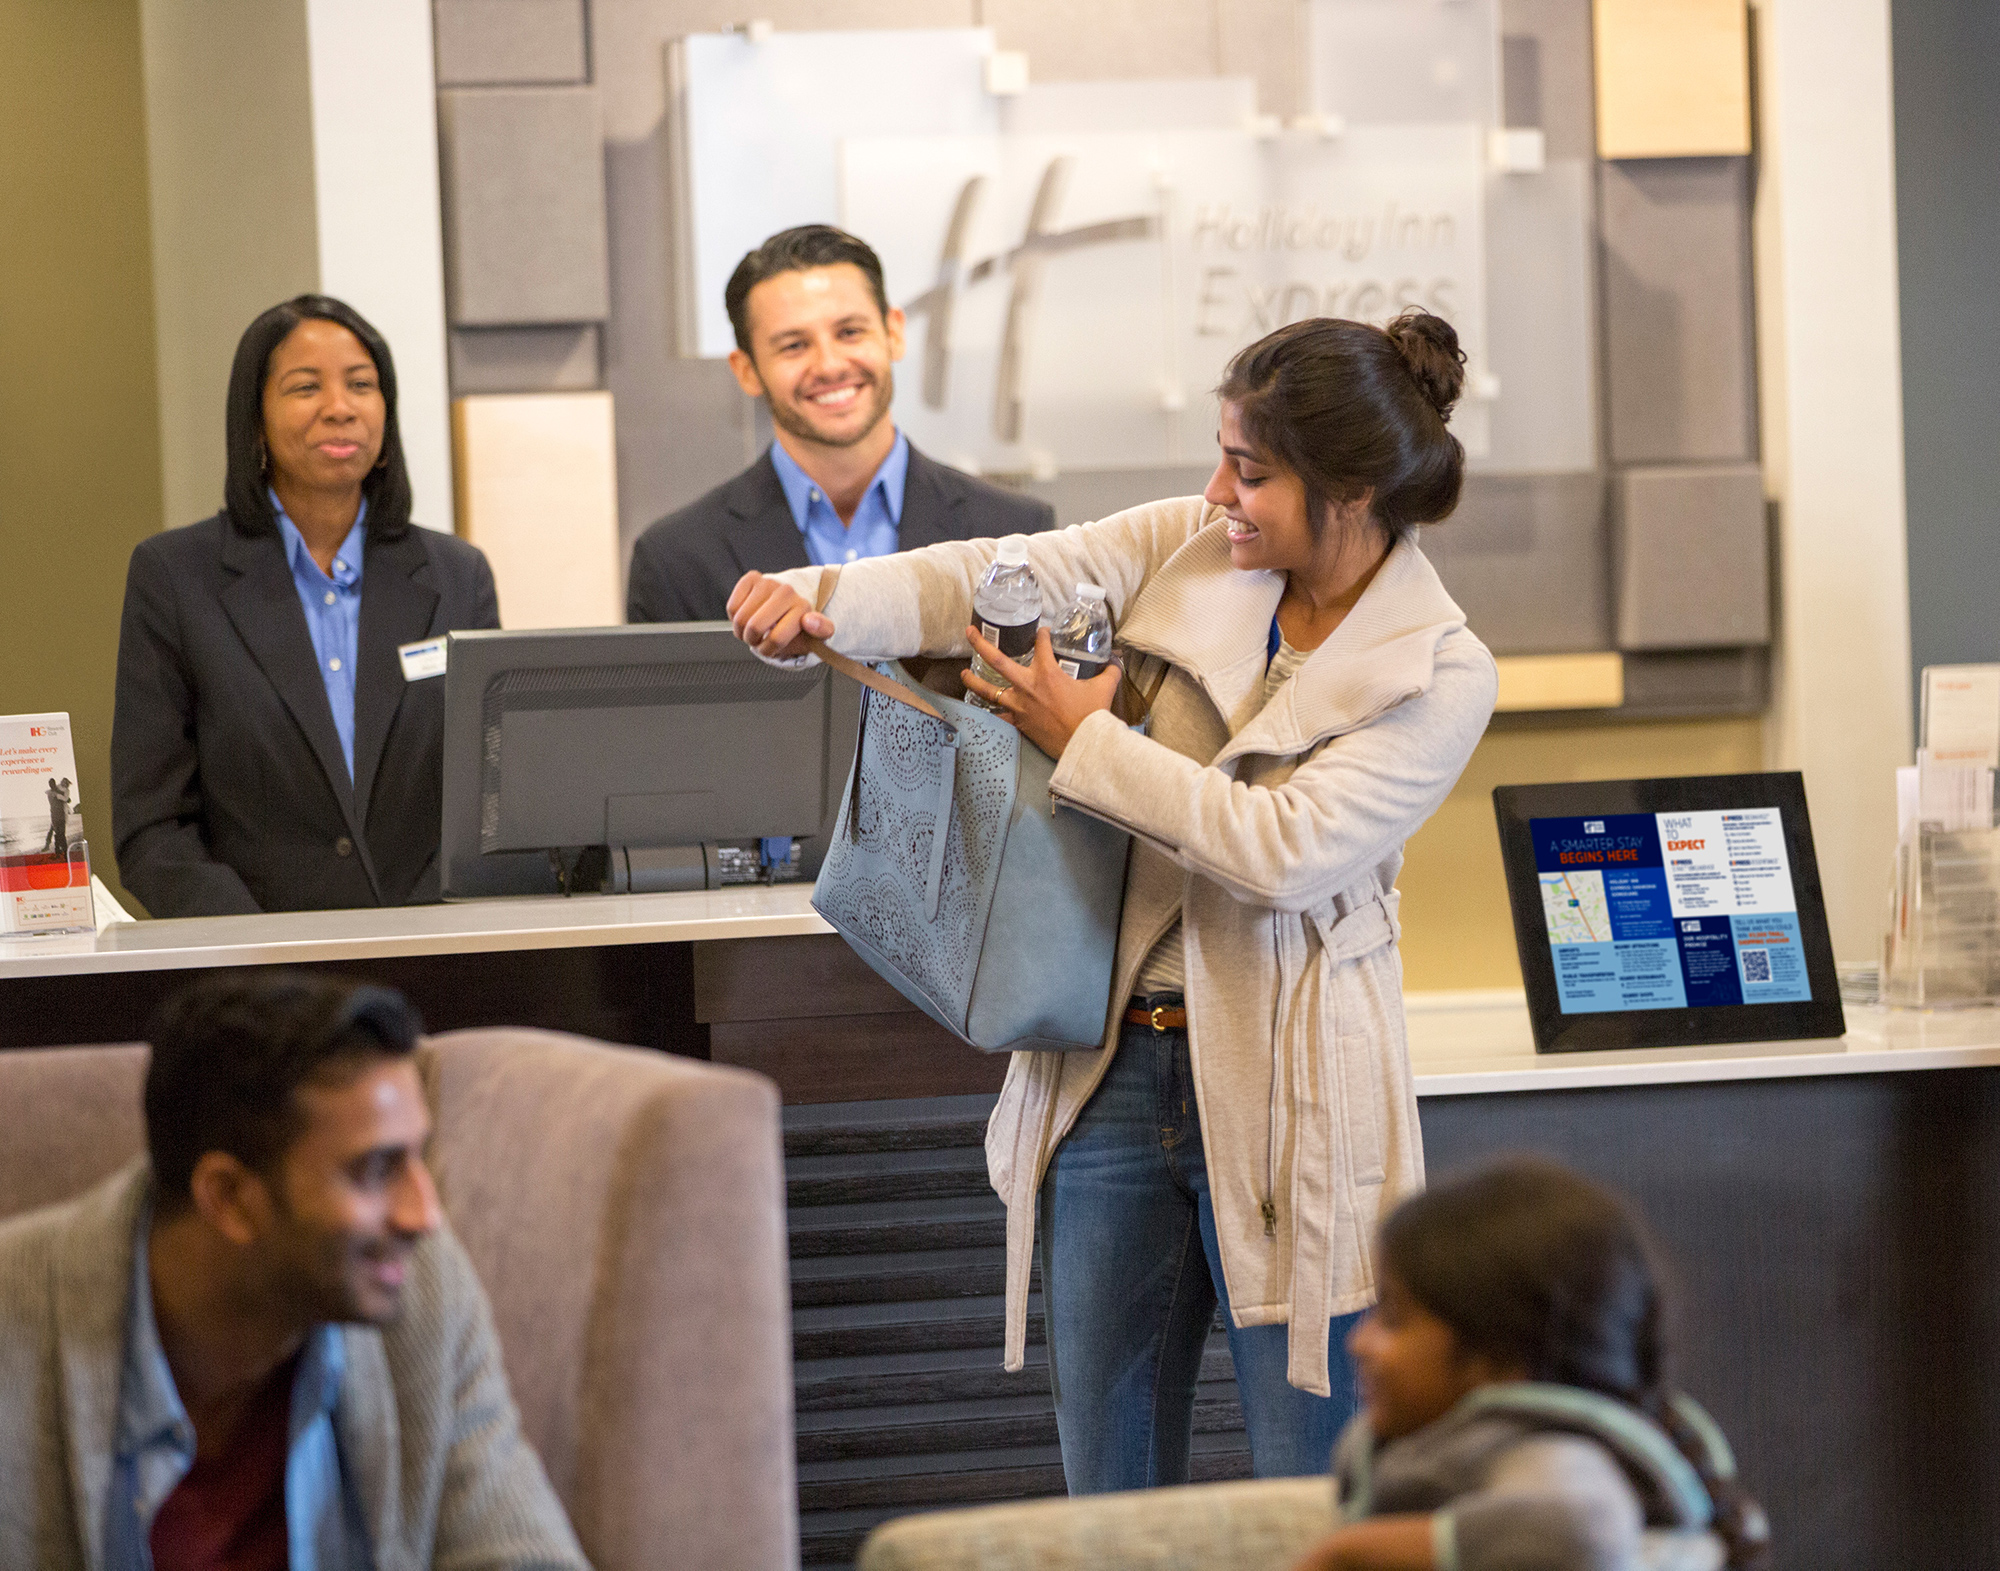 A guest at a hotel checkin reaching into her purse. On the table in front of her is a screen with the smart guide on it, with blue and white sections detailing relevant information for the guests stay